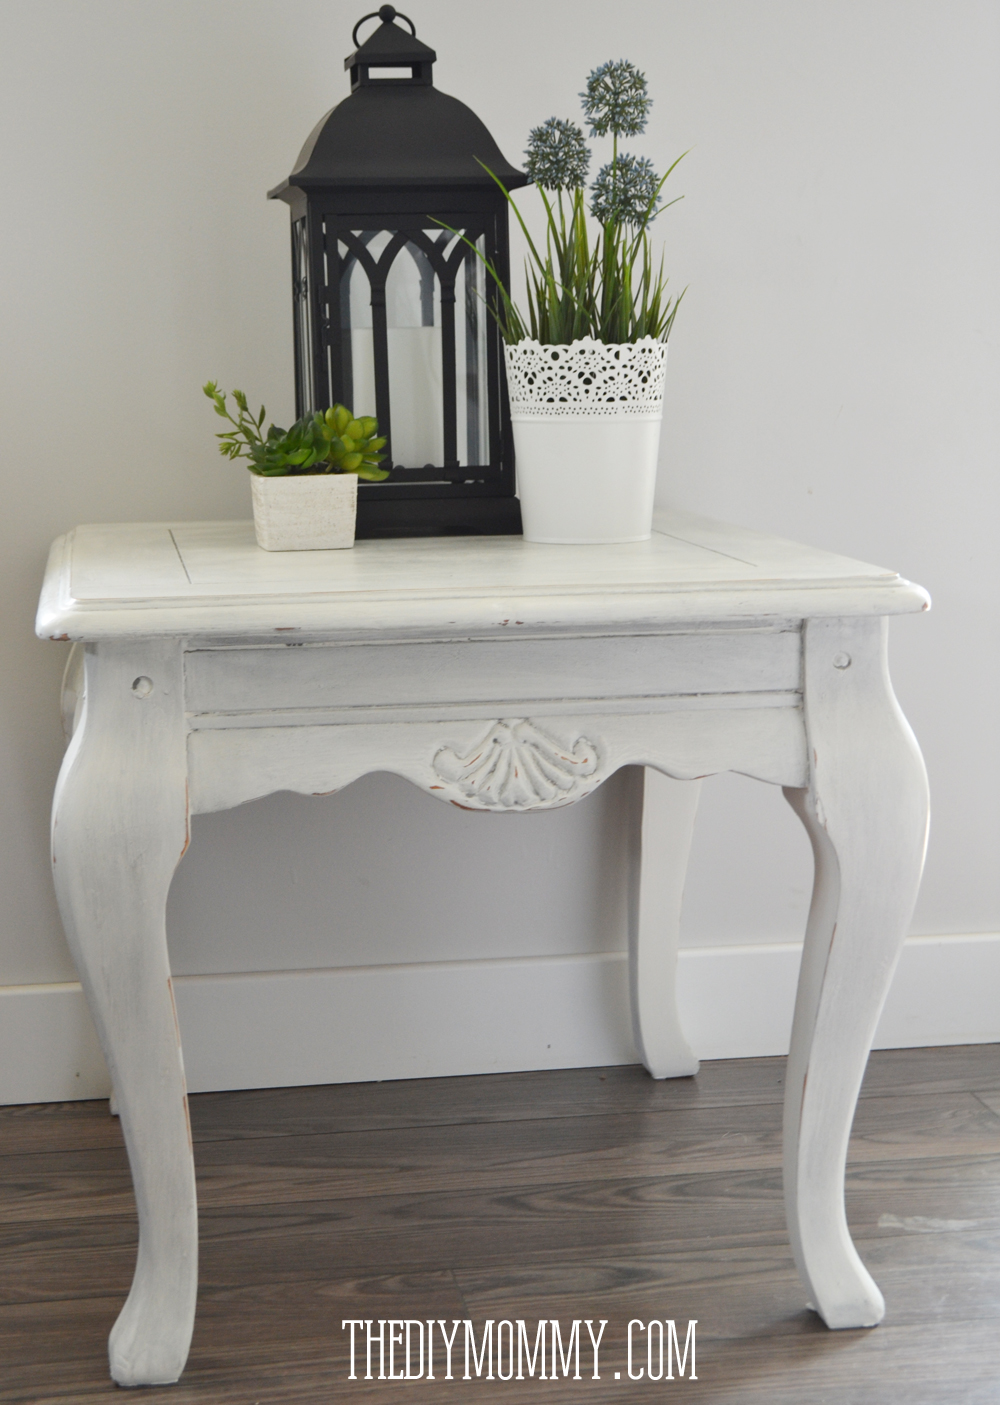 make diy dark coloured wax upcycled side table the mommy shabby chic end with chalk paint and metallic distressed tables rustic teal universal furniture blair vintage marble top